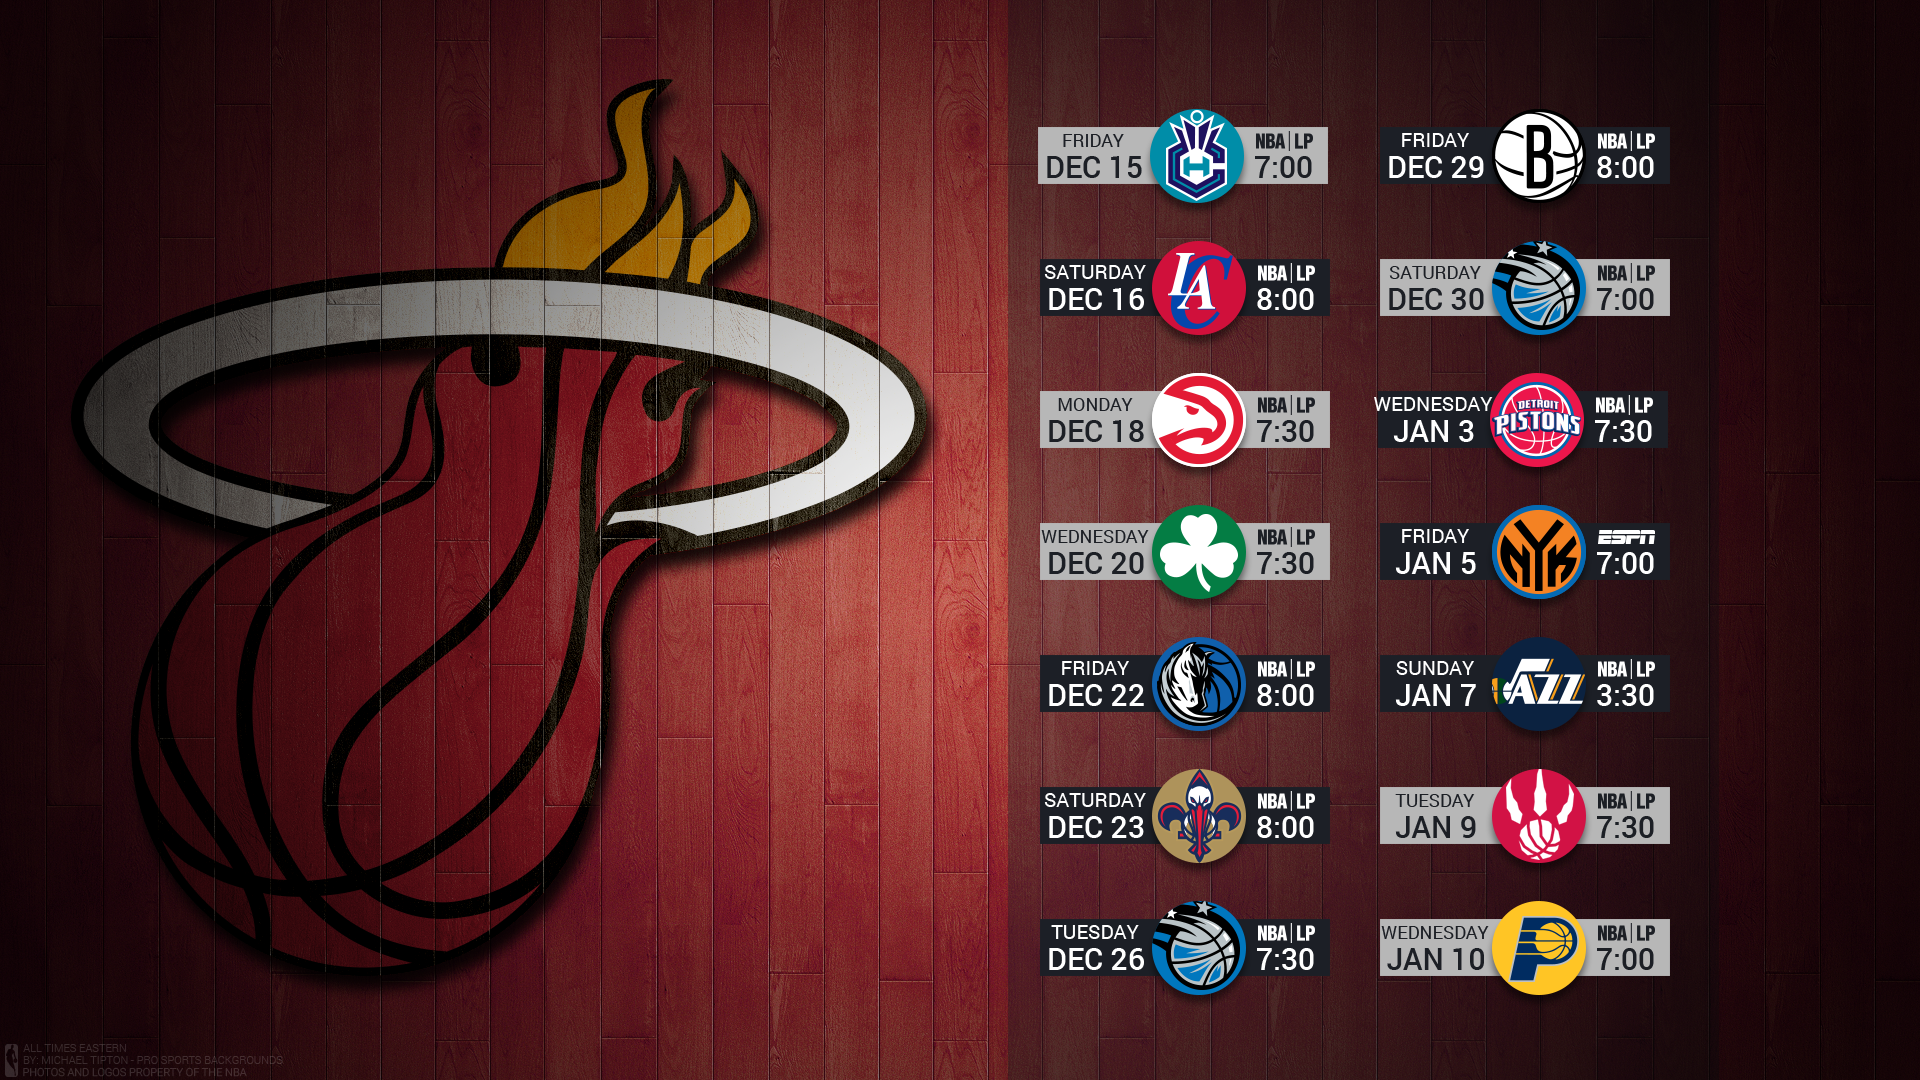 Miami Heat Wallpapers And Background Ima 1023724 Png Images Pngio